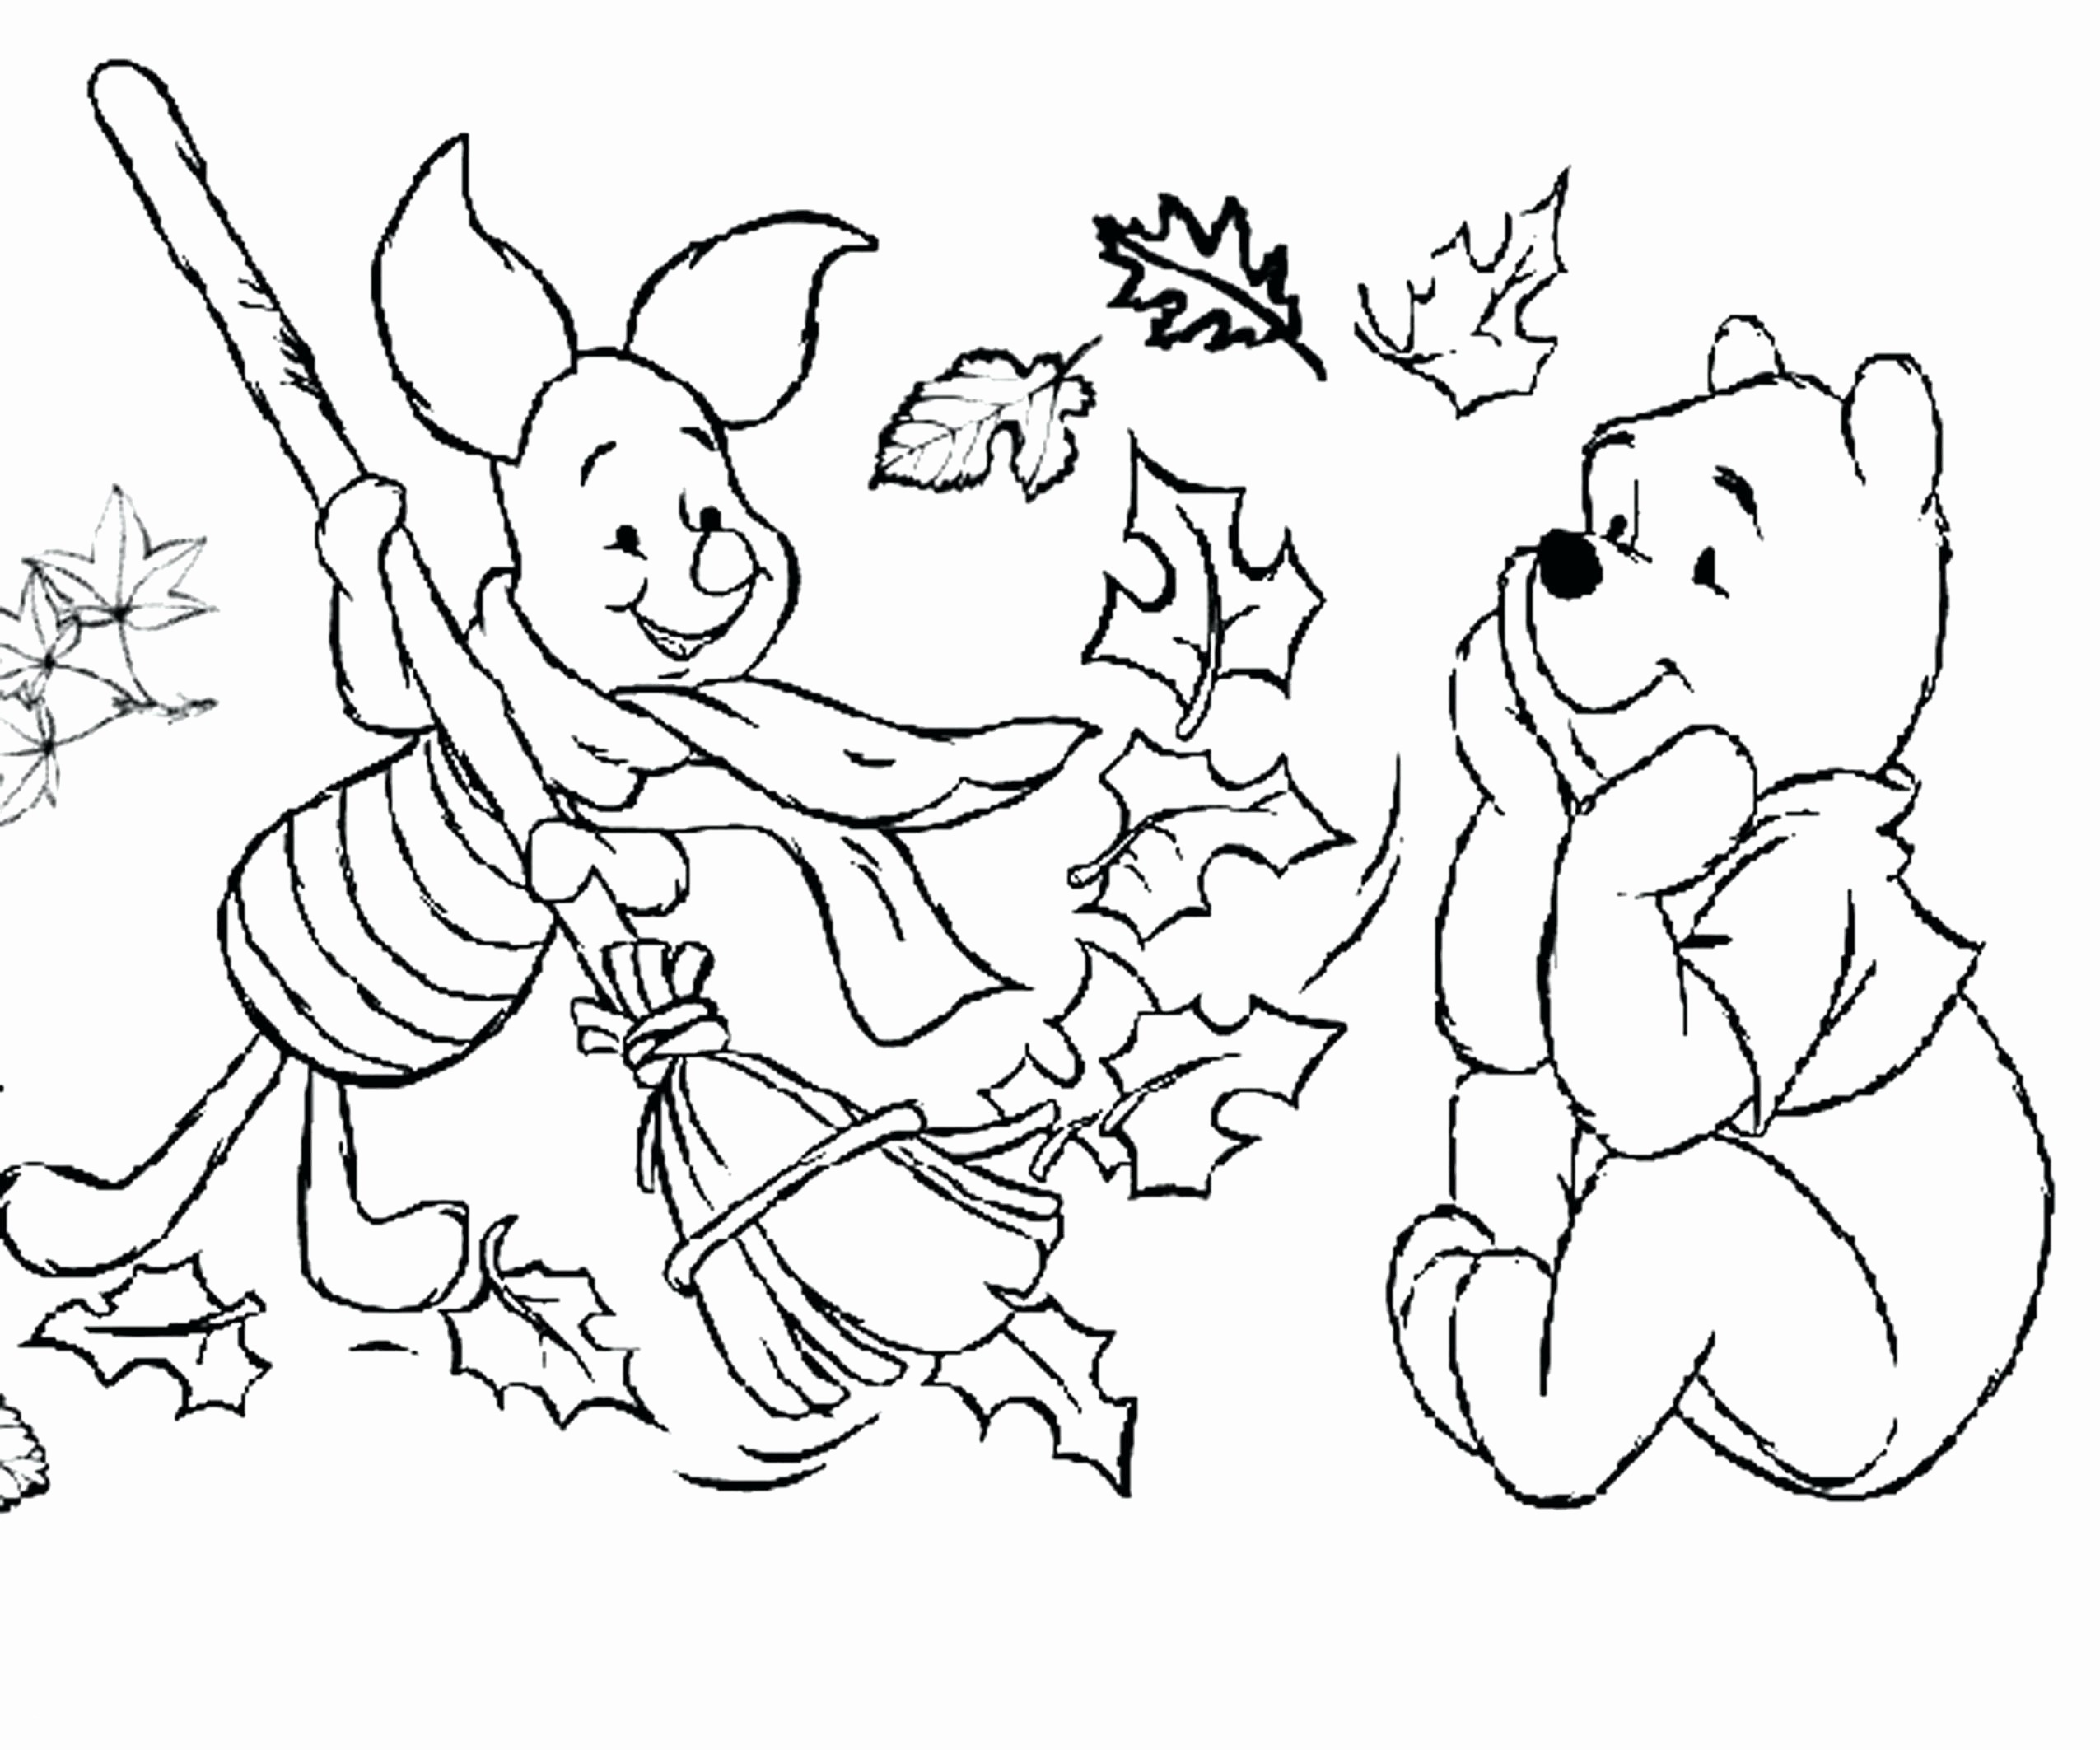 Tap Dancer Coloring Pages  Collection 15j - To print for your project